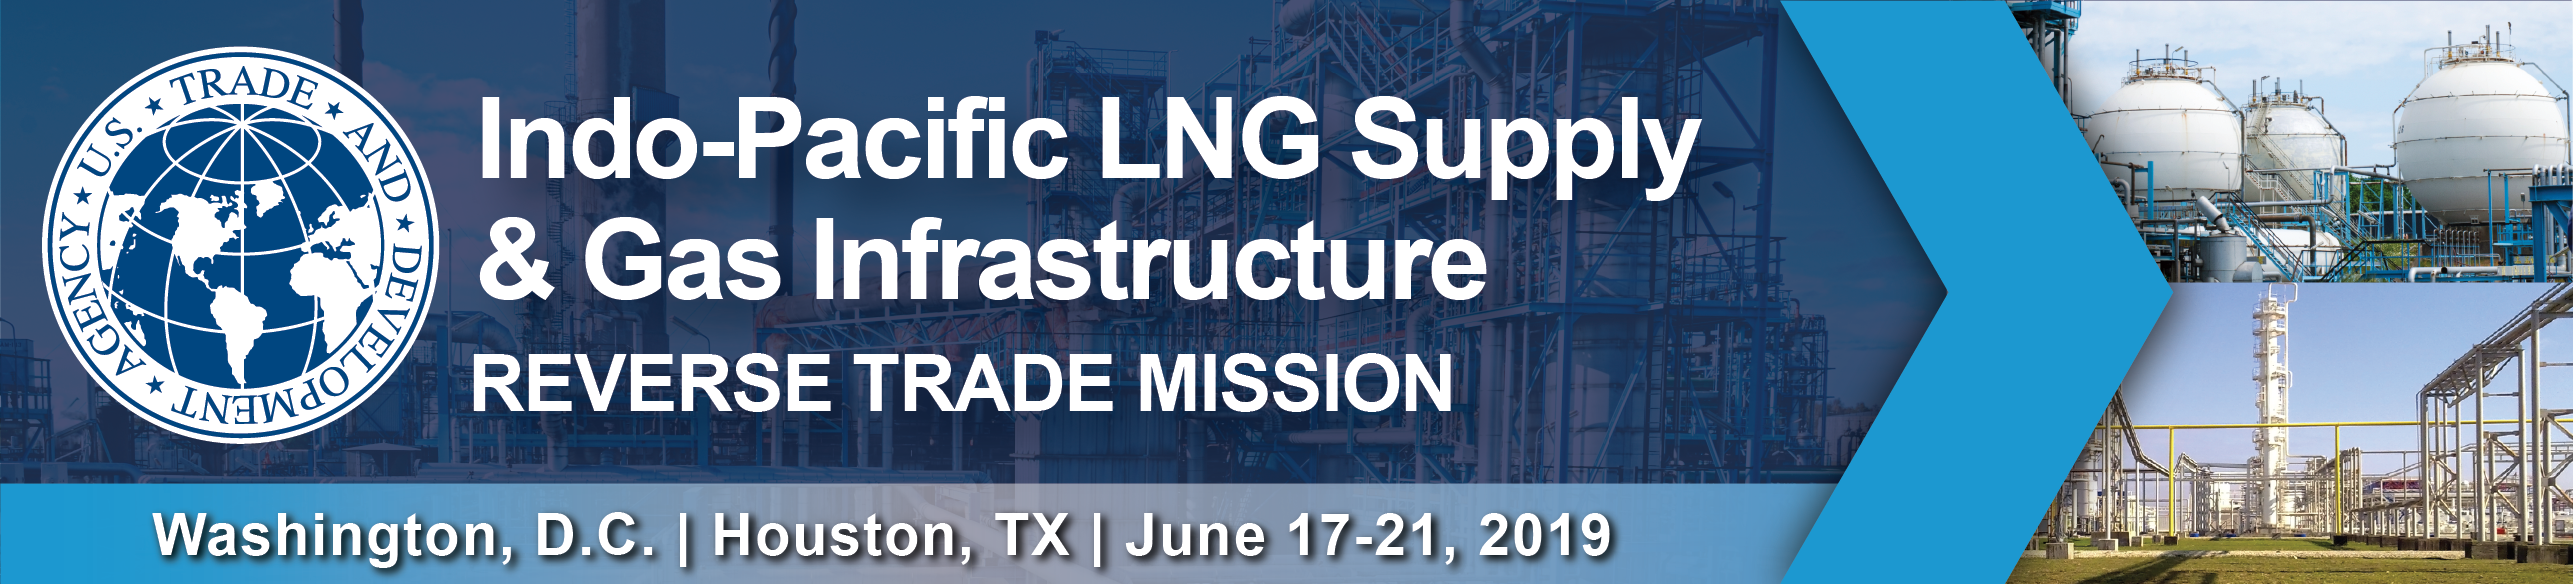 RTM Header June 17-21 - Indo-Pacific LNG Supply & Gas Infrastructure RTM -01 (1)